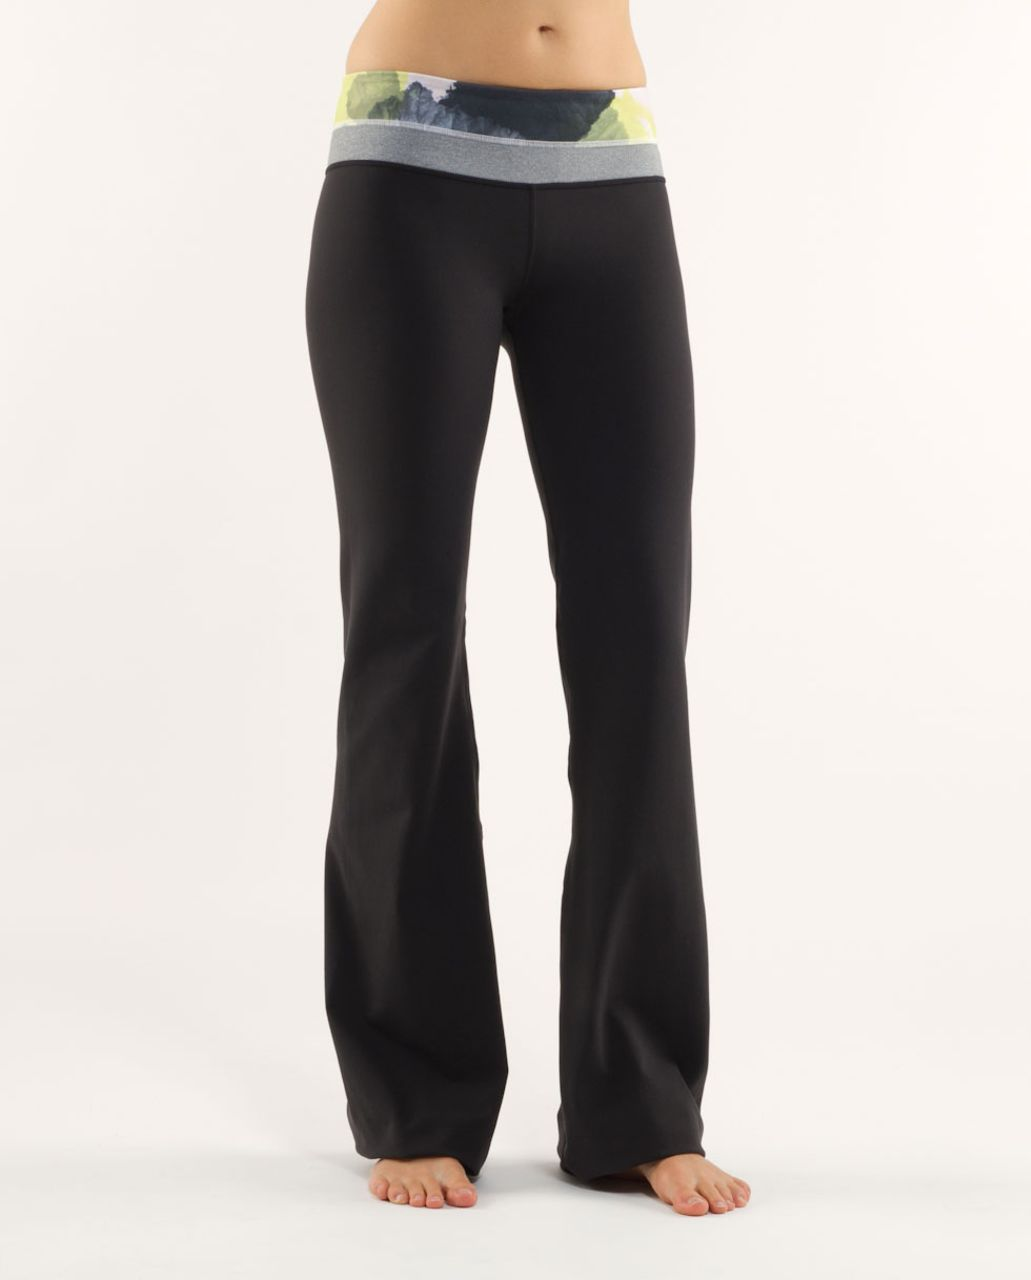 Lululemon Groove Pant (Tall) - Black /  Black Citron Tinted Canvas Super /  Heathered Blurred Grey